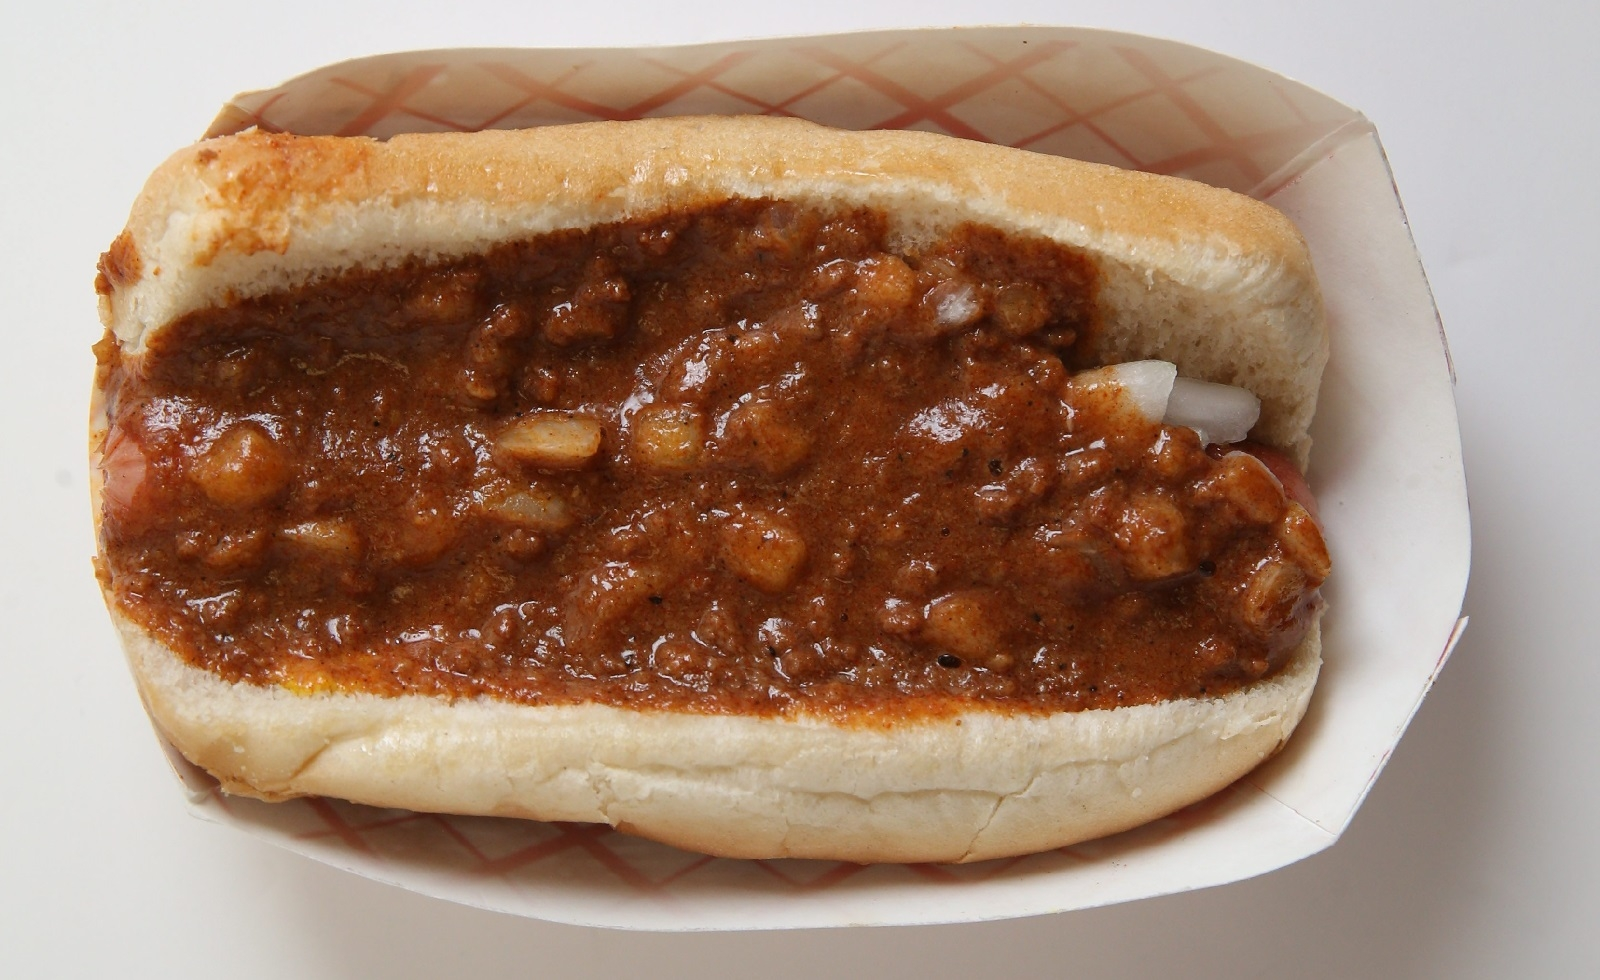 Louie's Texas Hots has opened a new location in North Tonawanda, the local chain's first venture into Niagara County. Here's a Texas hot with onions and mustard. (Sharon Cantillon/Buffalo News file photo)